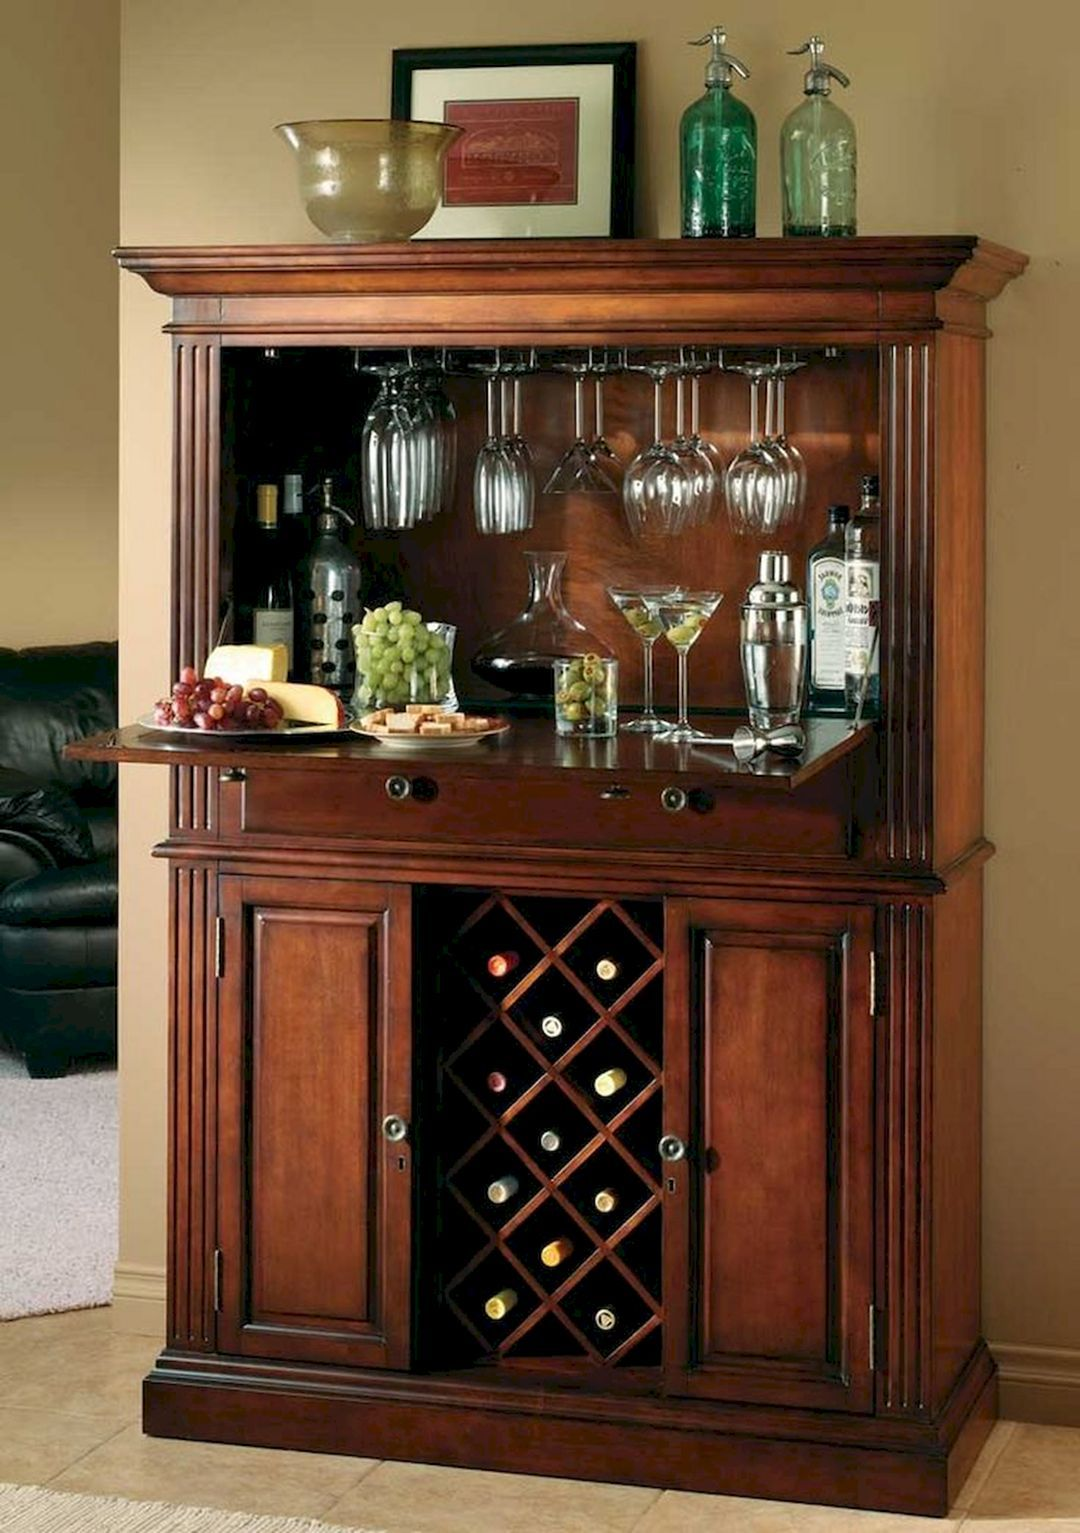 20 Gorgeous Small Corner Wine Cabinet Ideas For Home Look More